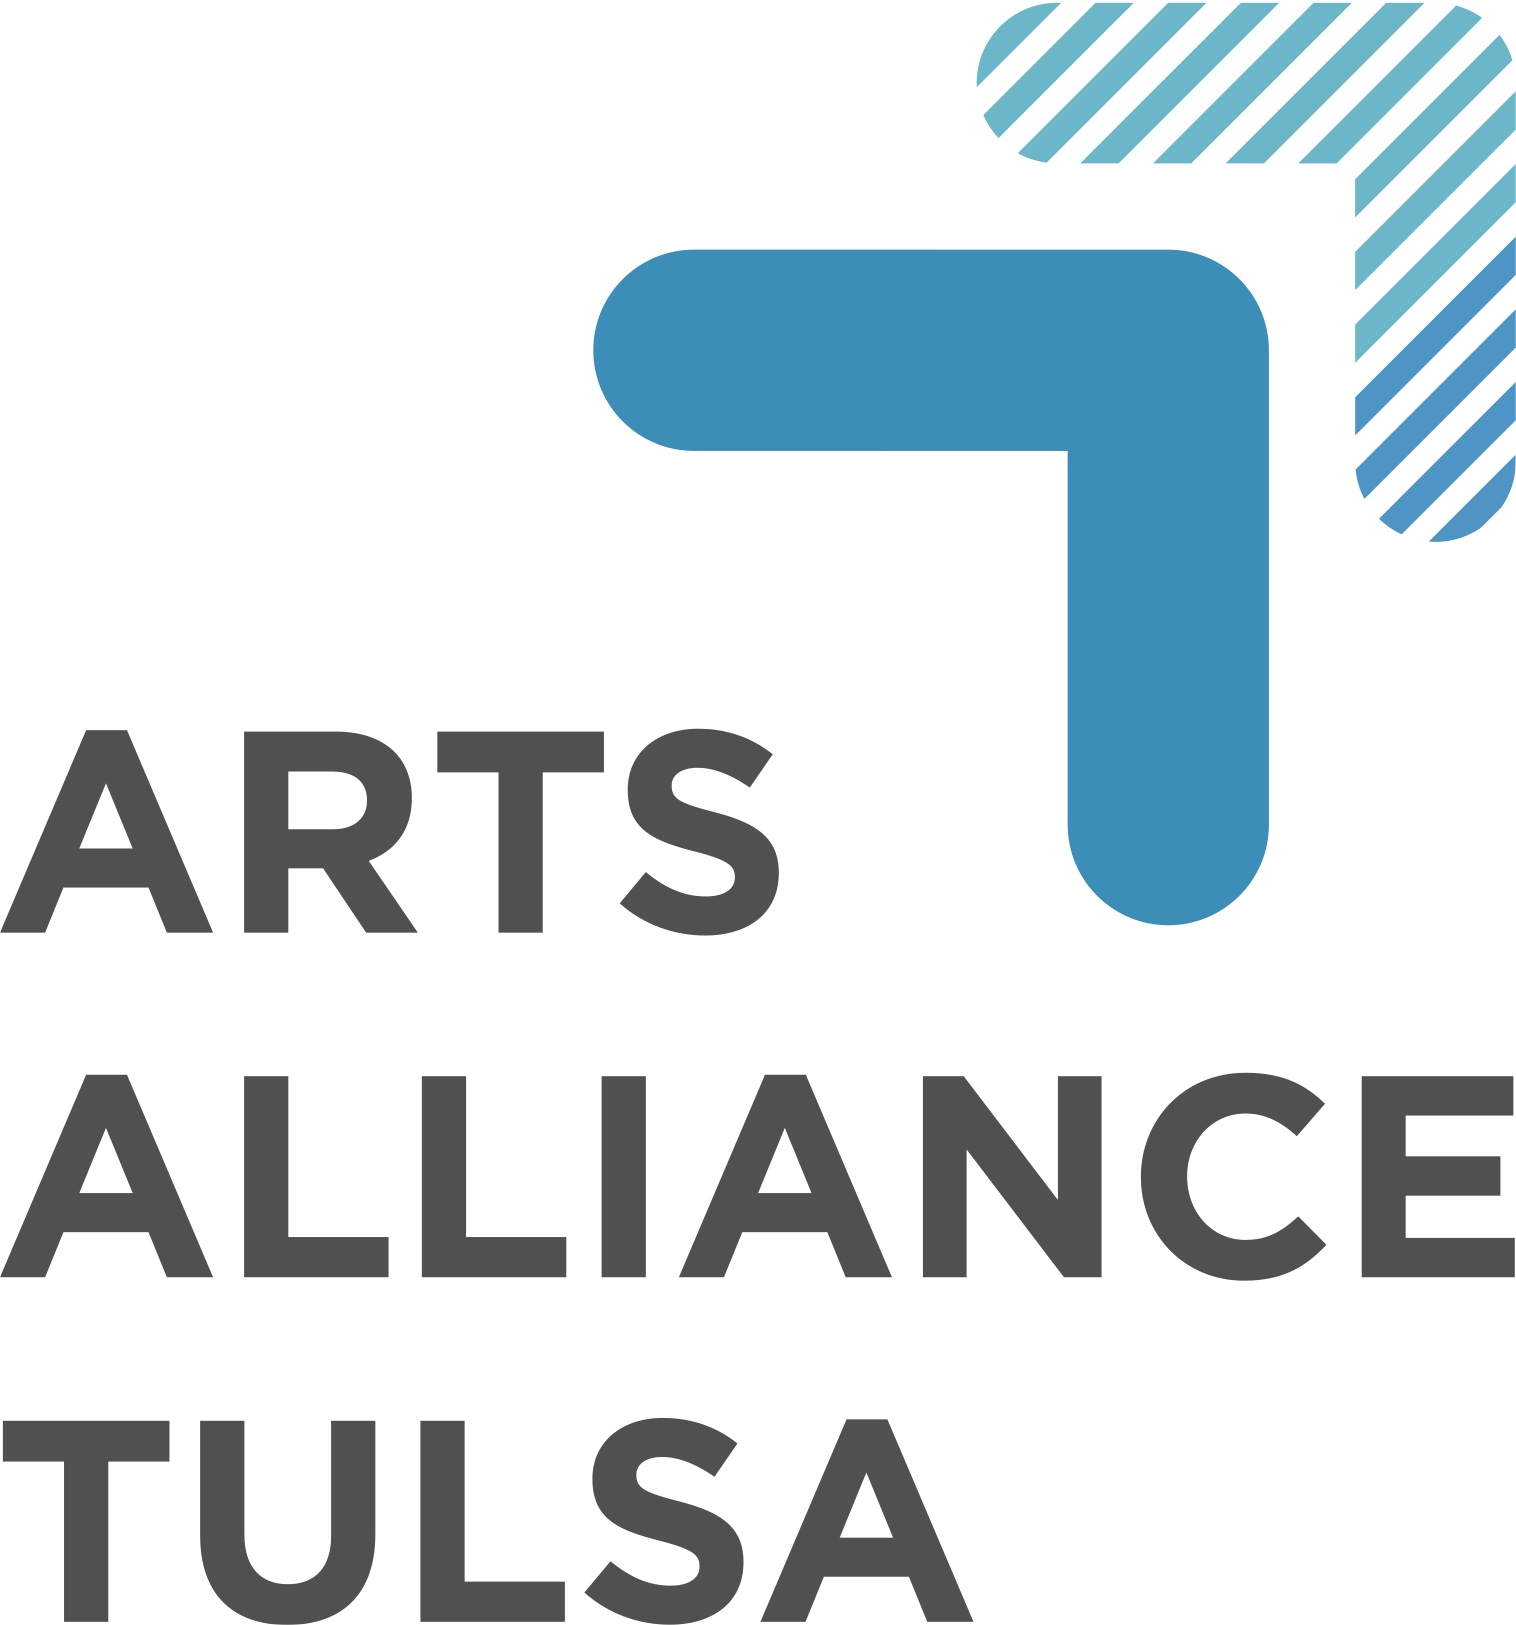 Image result for arts alliance tulsa